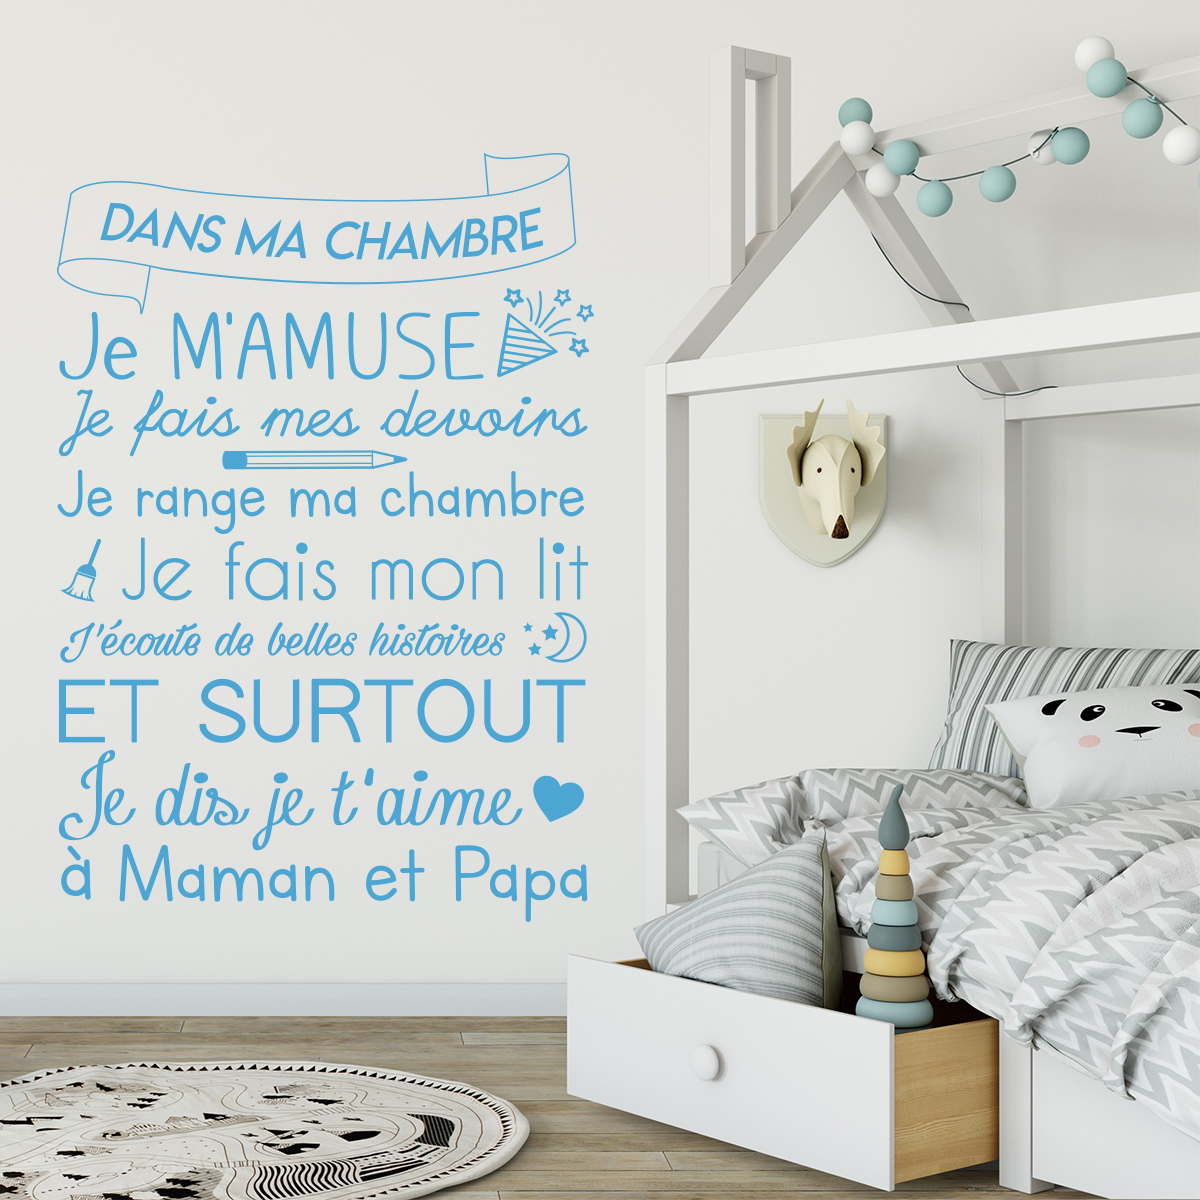 sticker citation r gles dans ma chambre stickers citations fran ais ambiance sticker. Black Bedroom Furniture Sets. Home Design Ideas